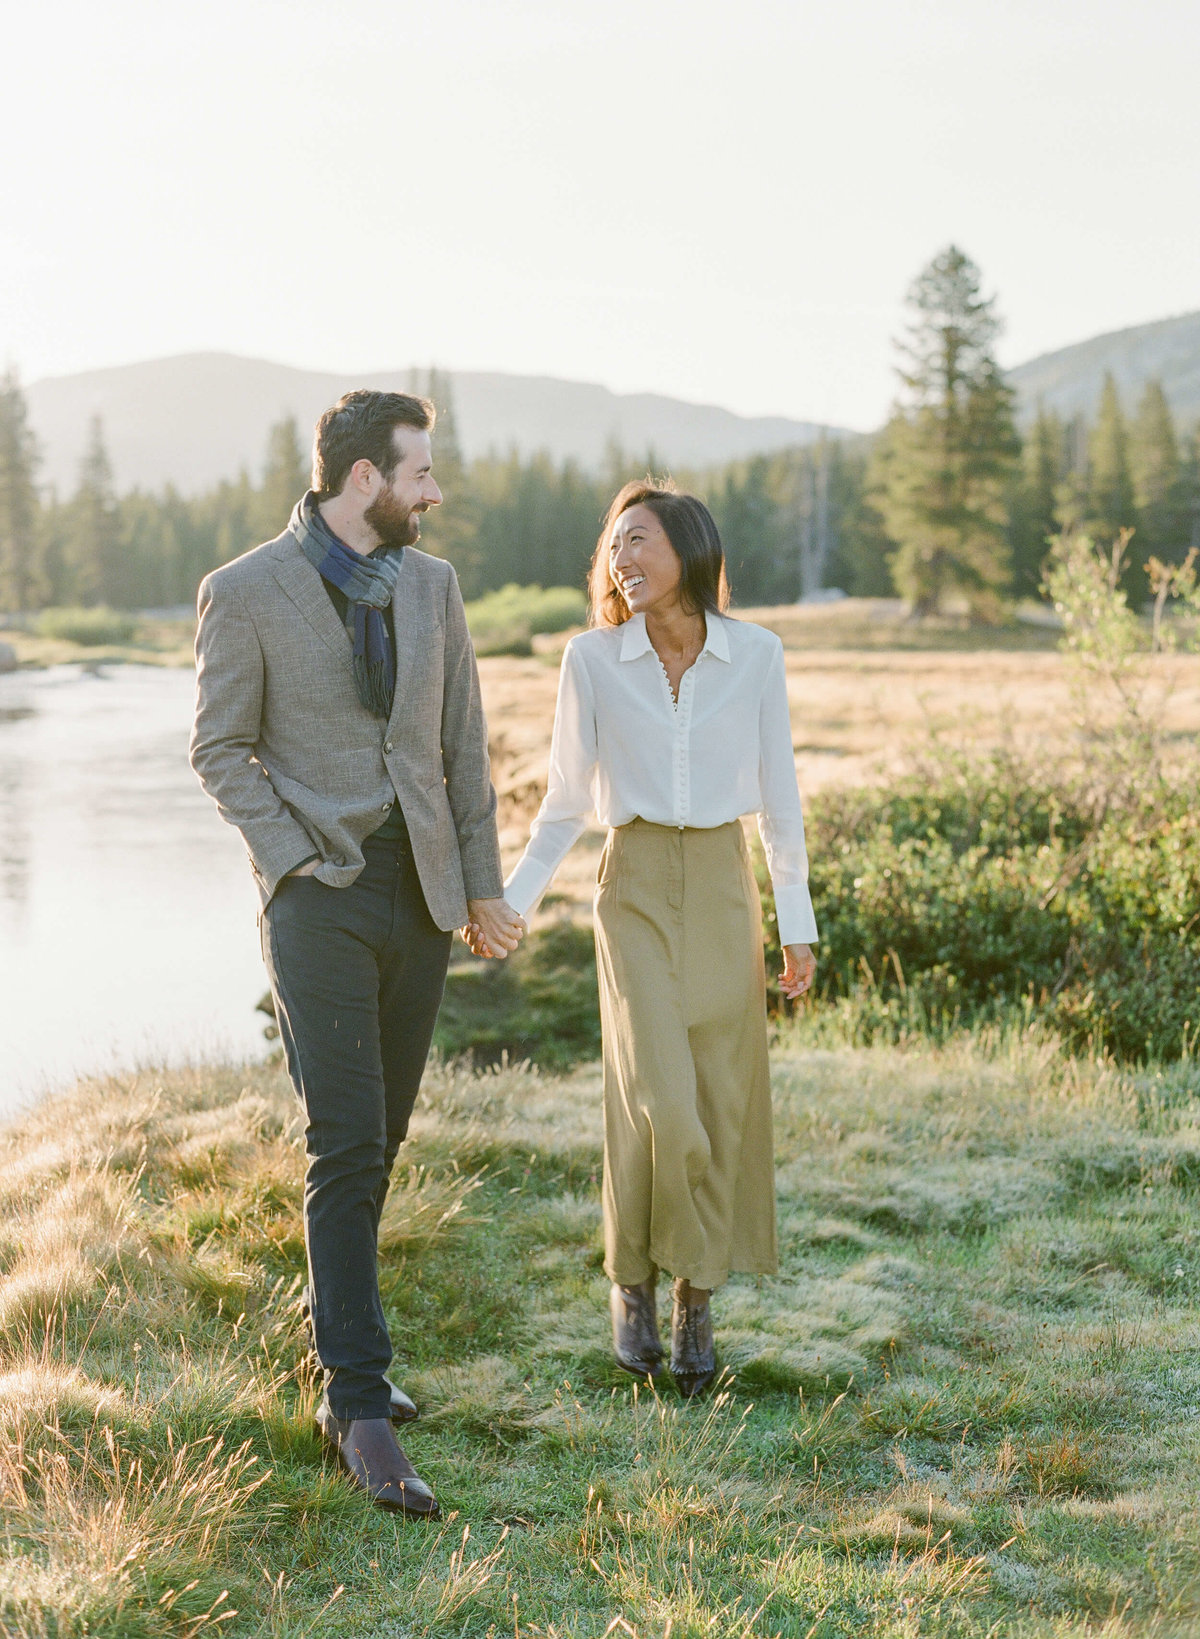 22-KTMerry-engagement-shoot-couple-Yosemite-park